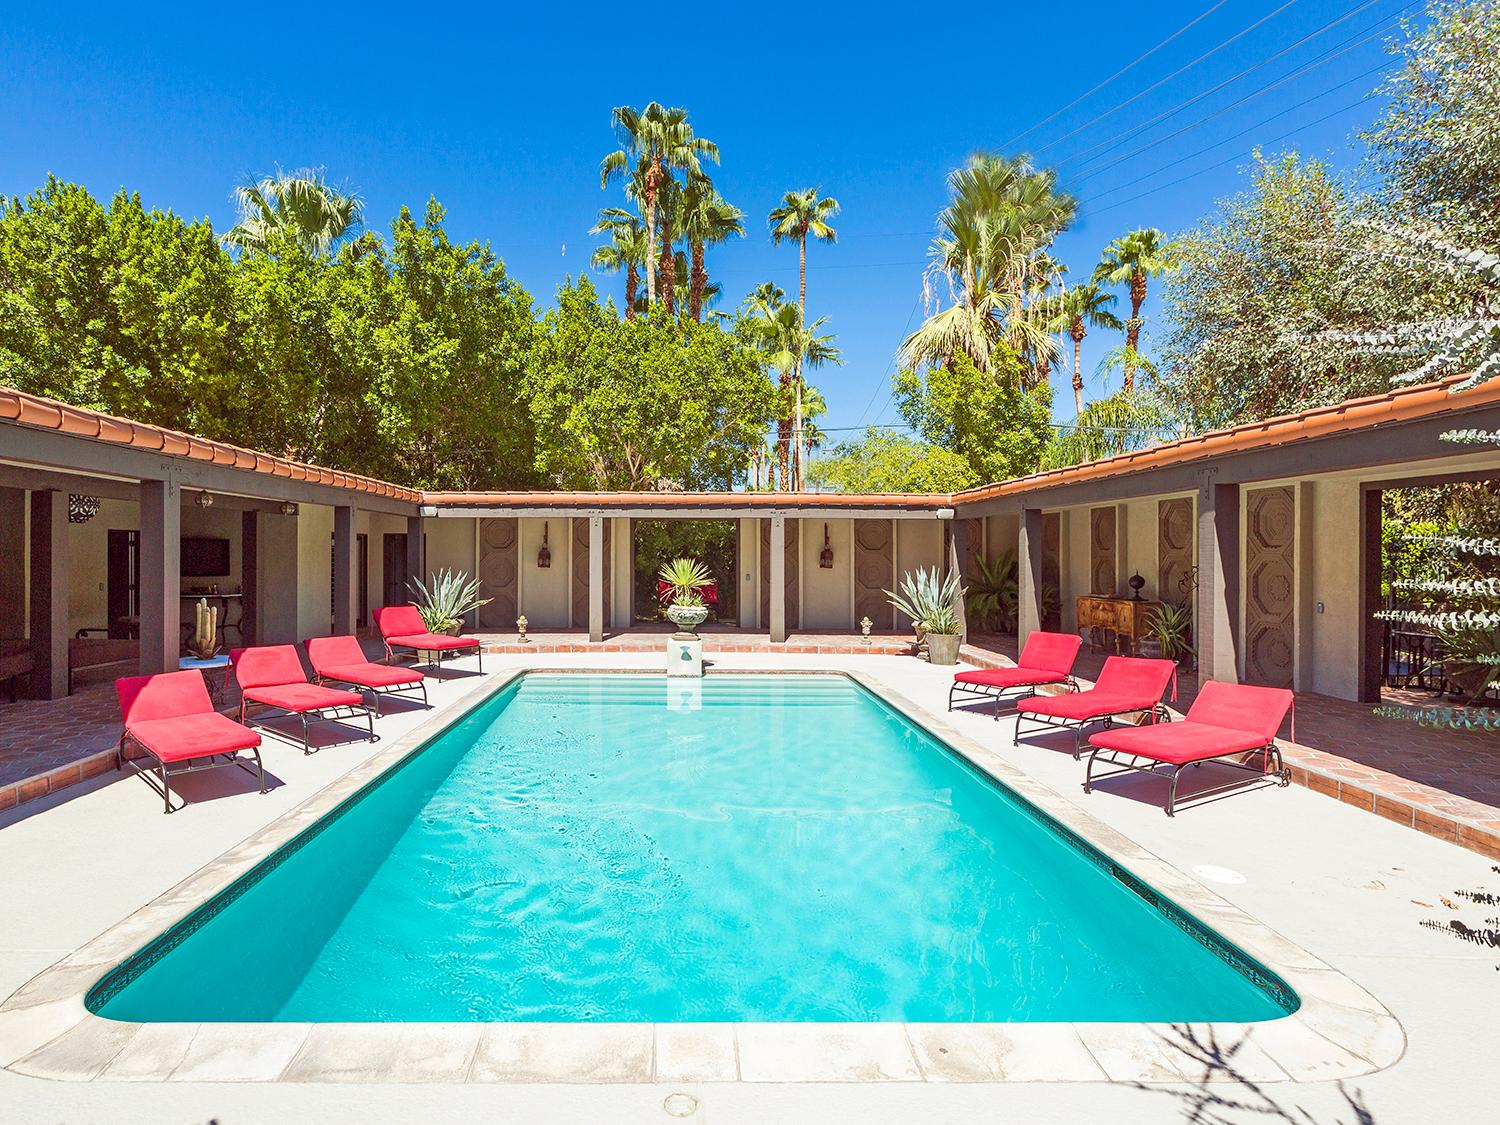 The Villa Carmelita is a timeless luxury. It has a fantastic Hollywood pedigree, having been the love nest of Sonny and Cher, as well as the desert retreat of Hollywood luminaries such as Natalie Wood, Lloyd Bridges, Robert Taylor, and Kirk Douglas.